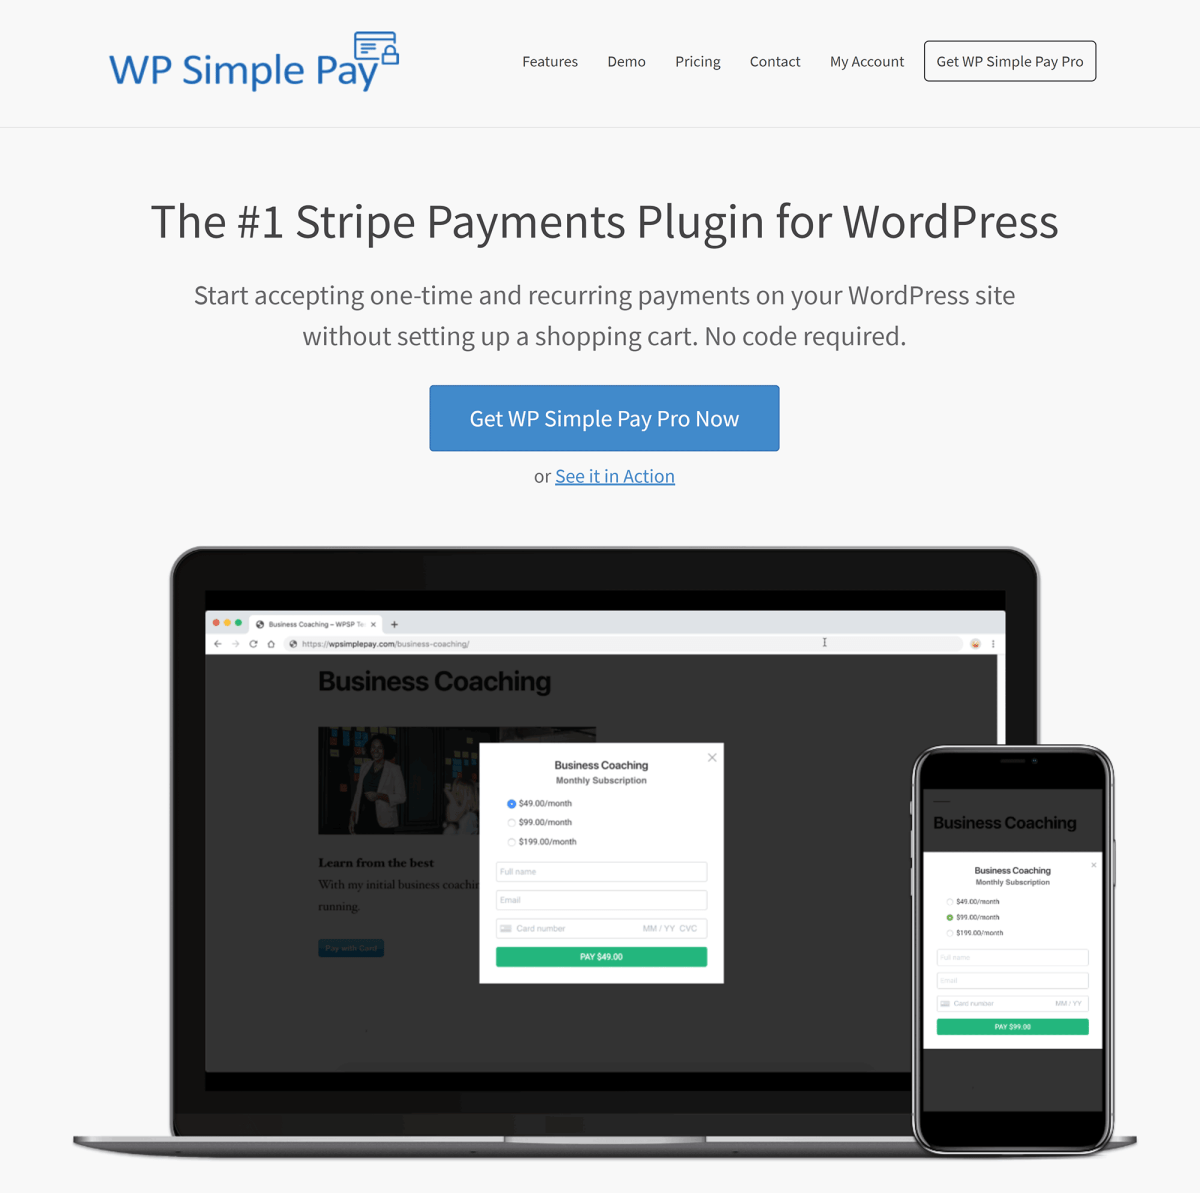 WP Simple Pay Home Page